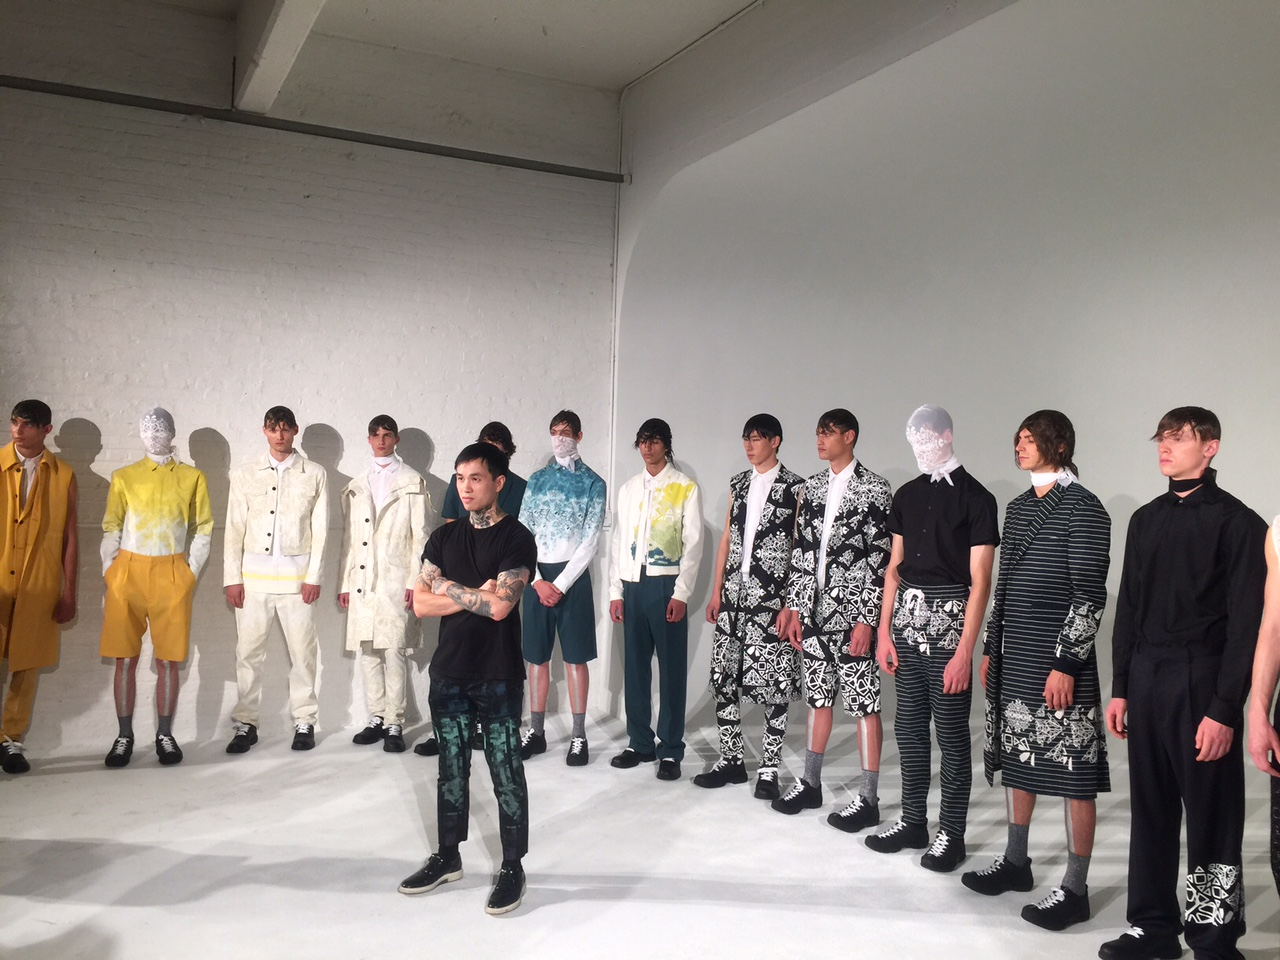 School of Fashion Alumna Kenneth Ning with his models; Image via Facebook.com